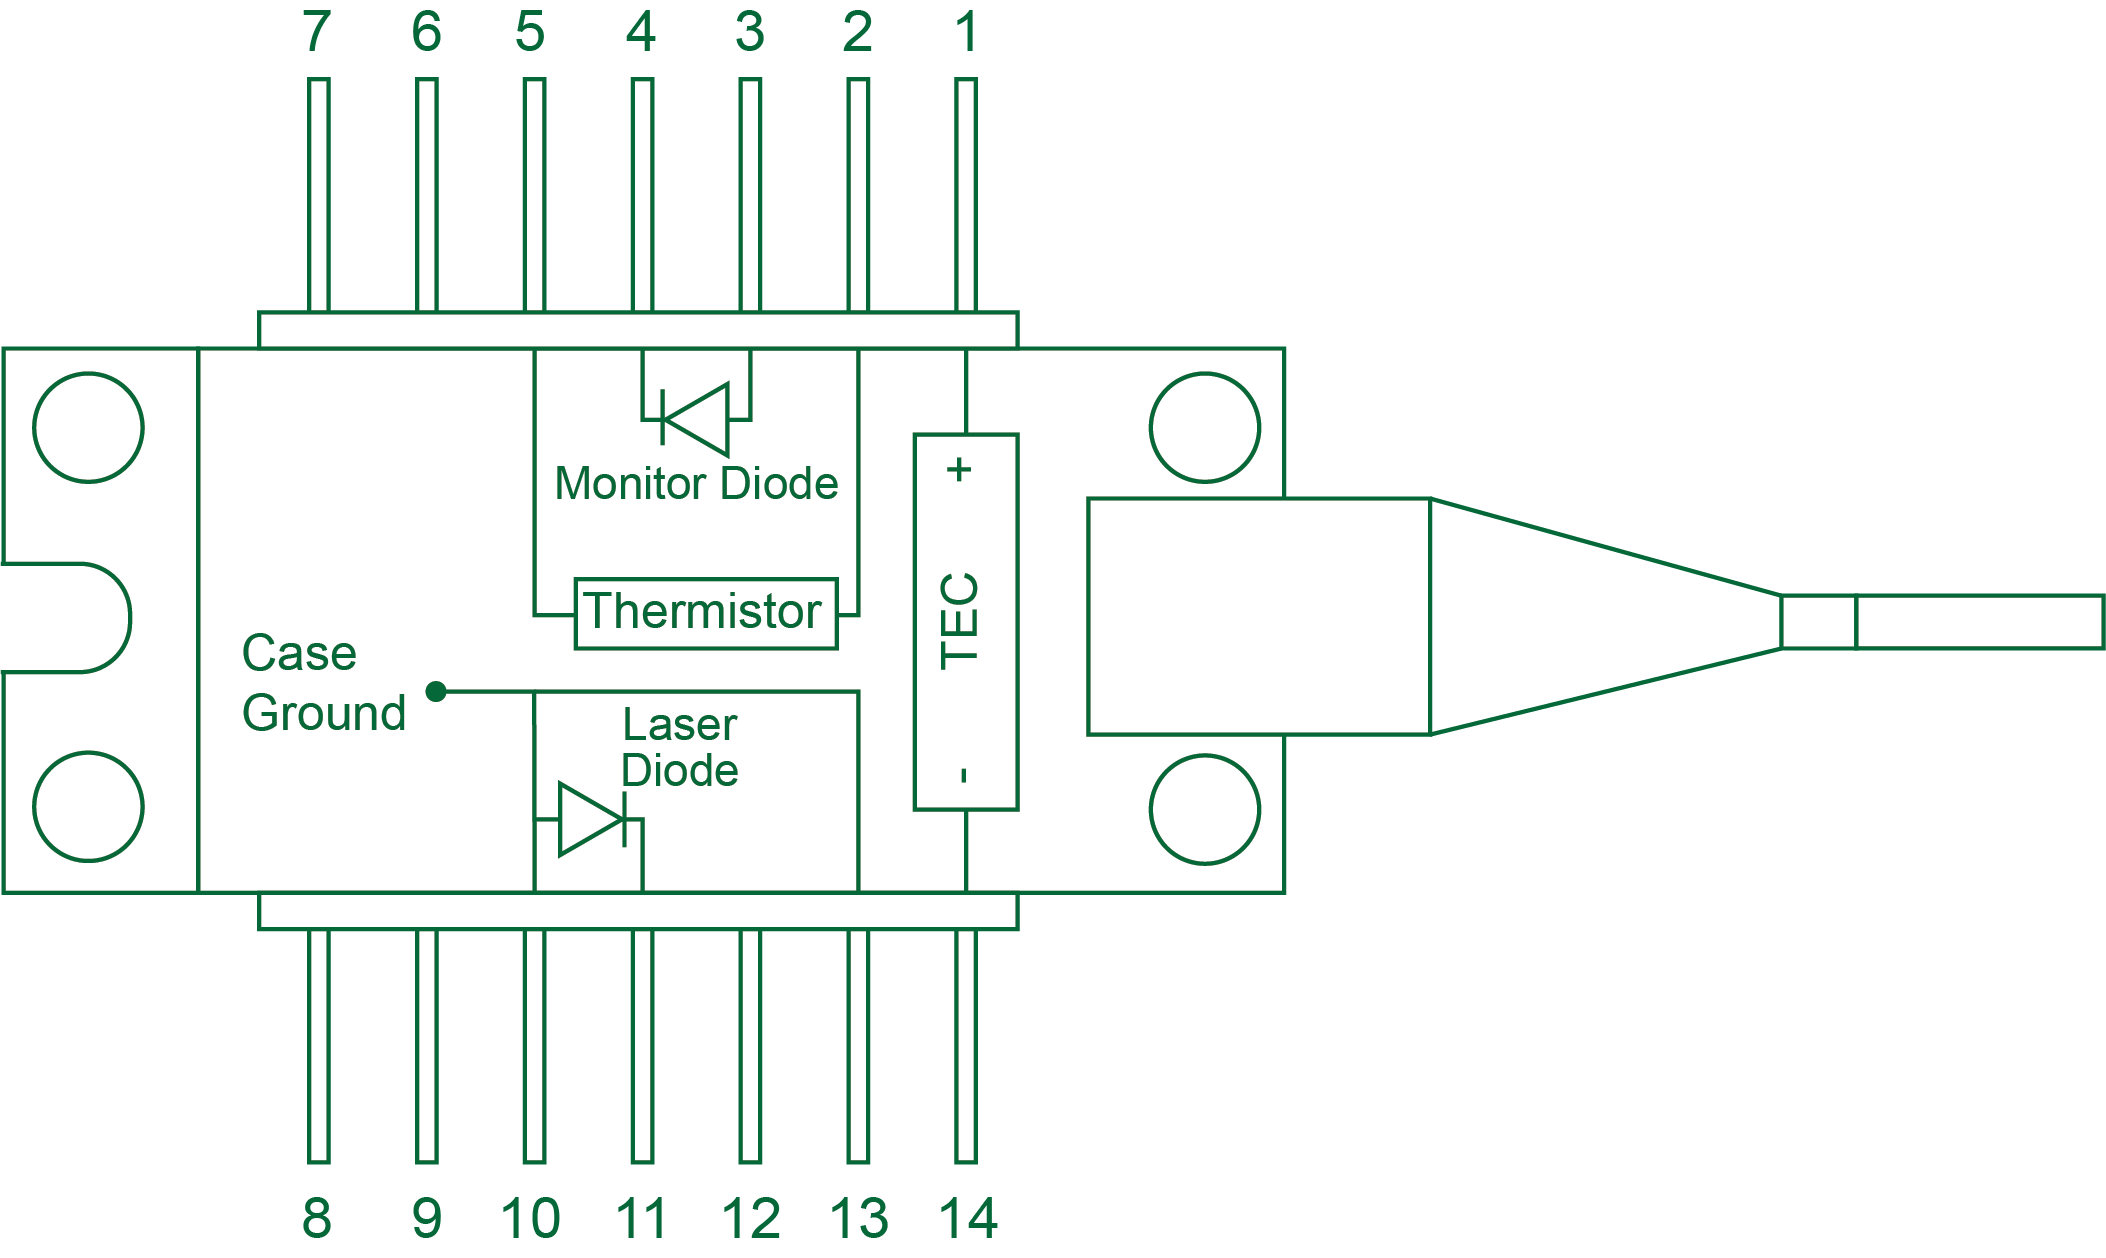 Wiring A Diode Custom Butterfly Card For The Ldmount Wavelength Electronics Type 2 Doesnt Match Your Laser It Allows You To Configure Connections Between Any 14 Pin Package And D Sub Connectors